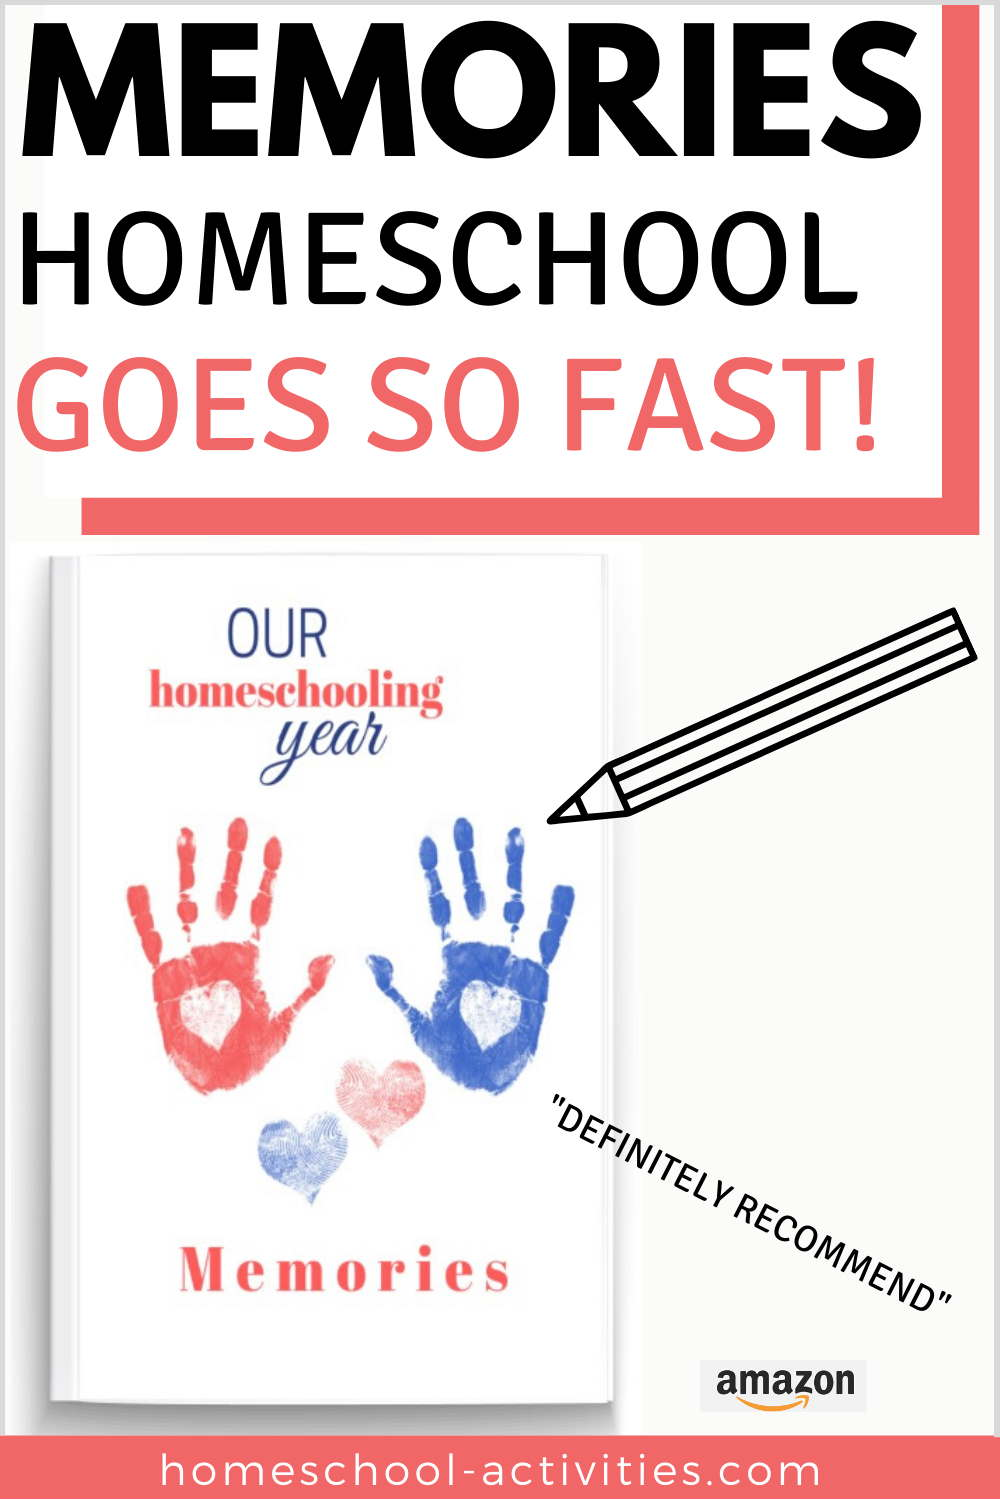 Homeschooling memory record book